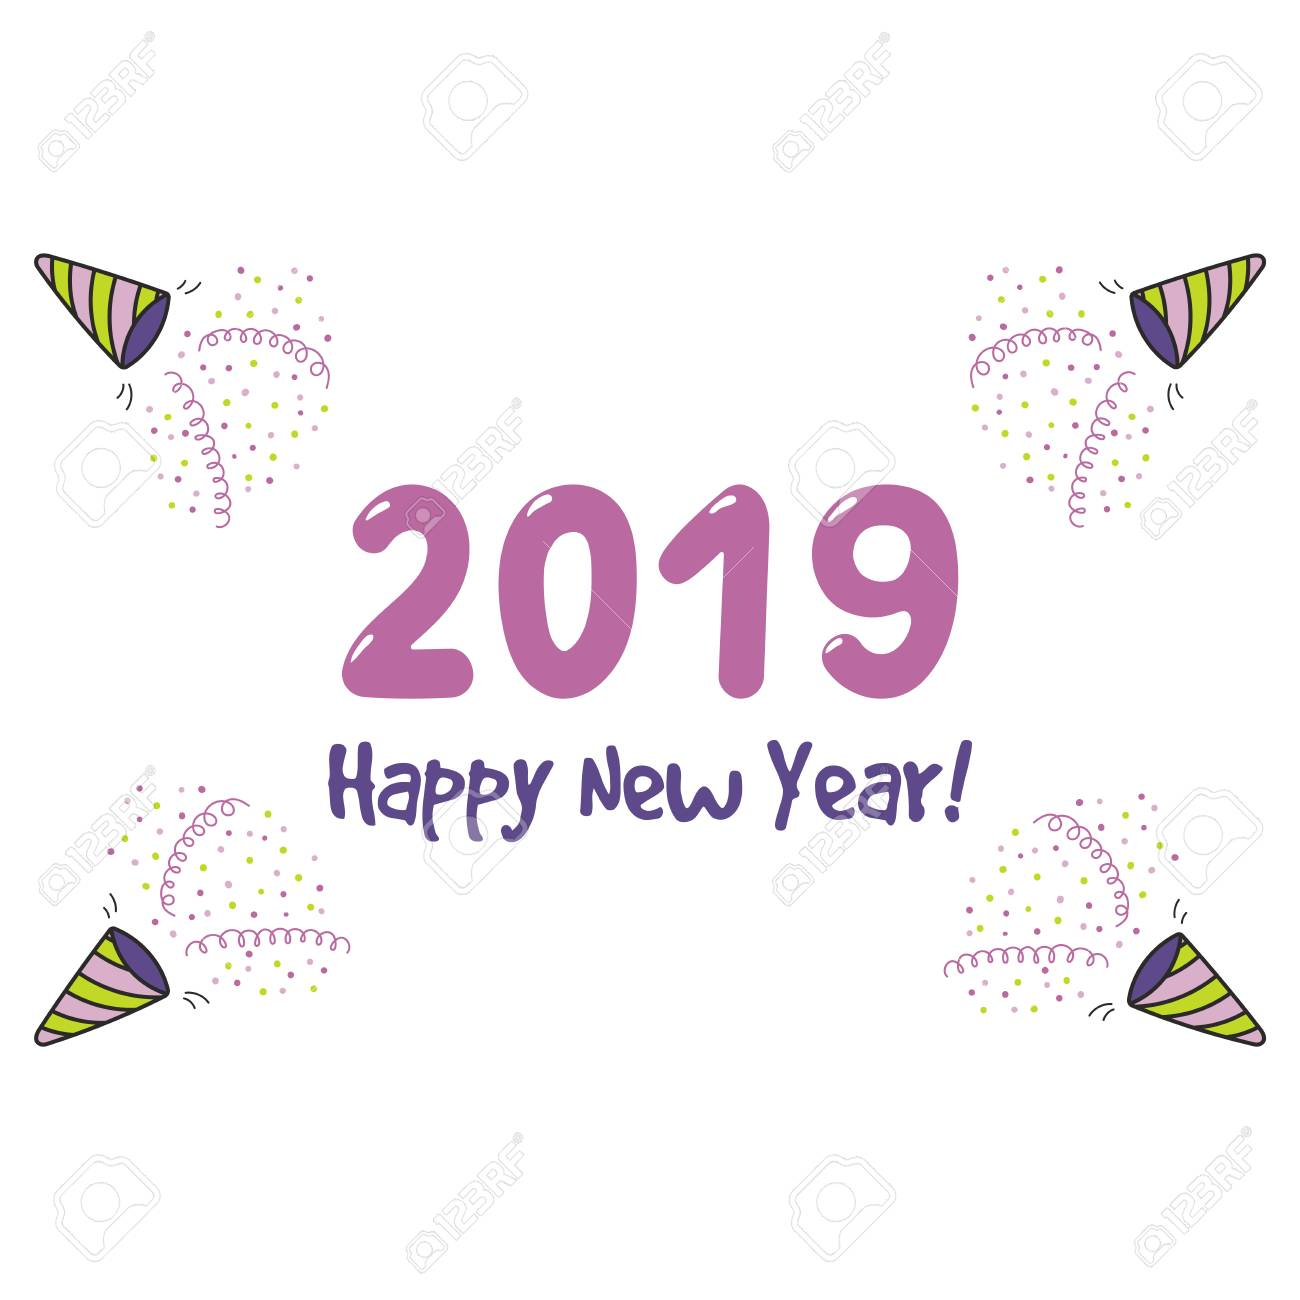 hand drawn happy new year 2019 greeting card banner template with party poppers serpentine